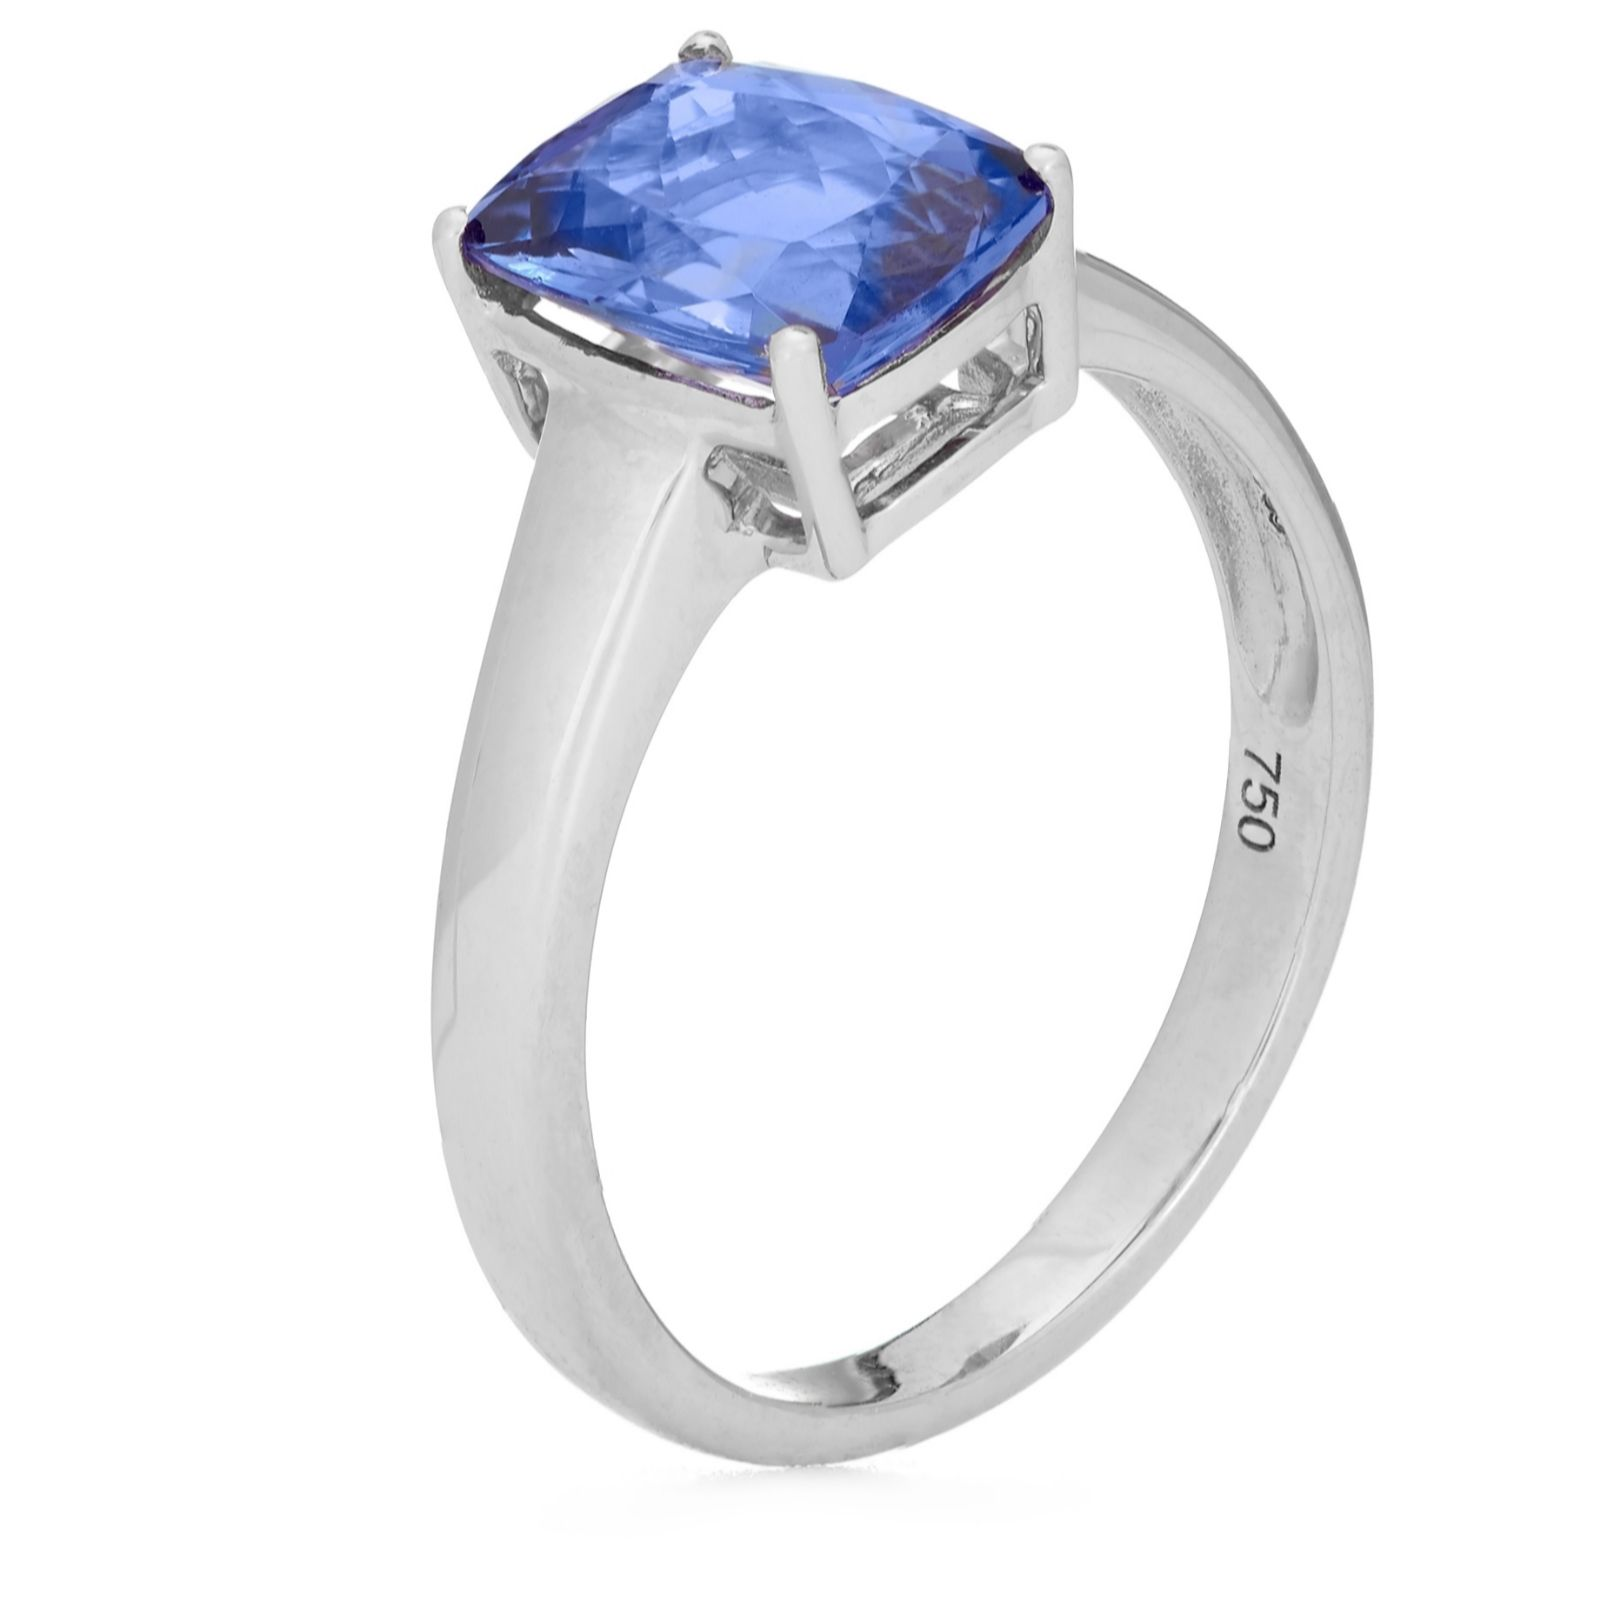 g la vita ring cut ct today tanzanite gold vital product h accent jewelry white diamond watches trillion shipping overstock free and